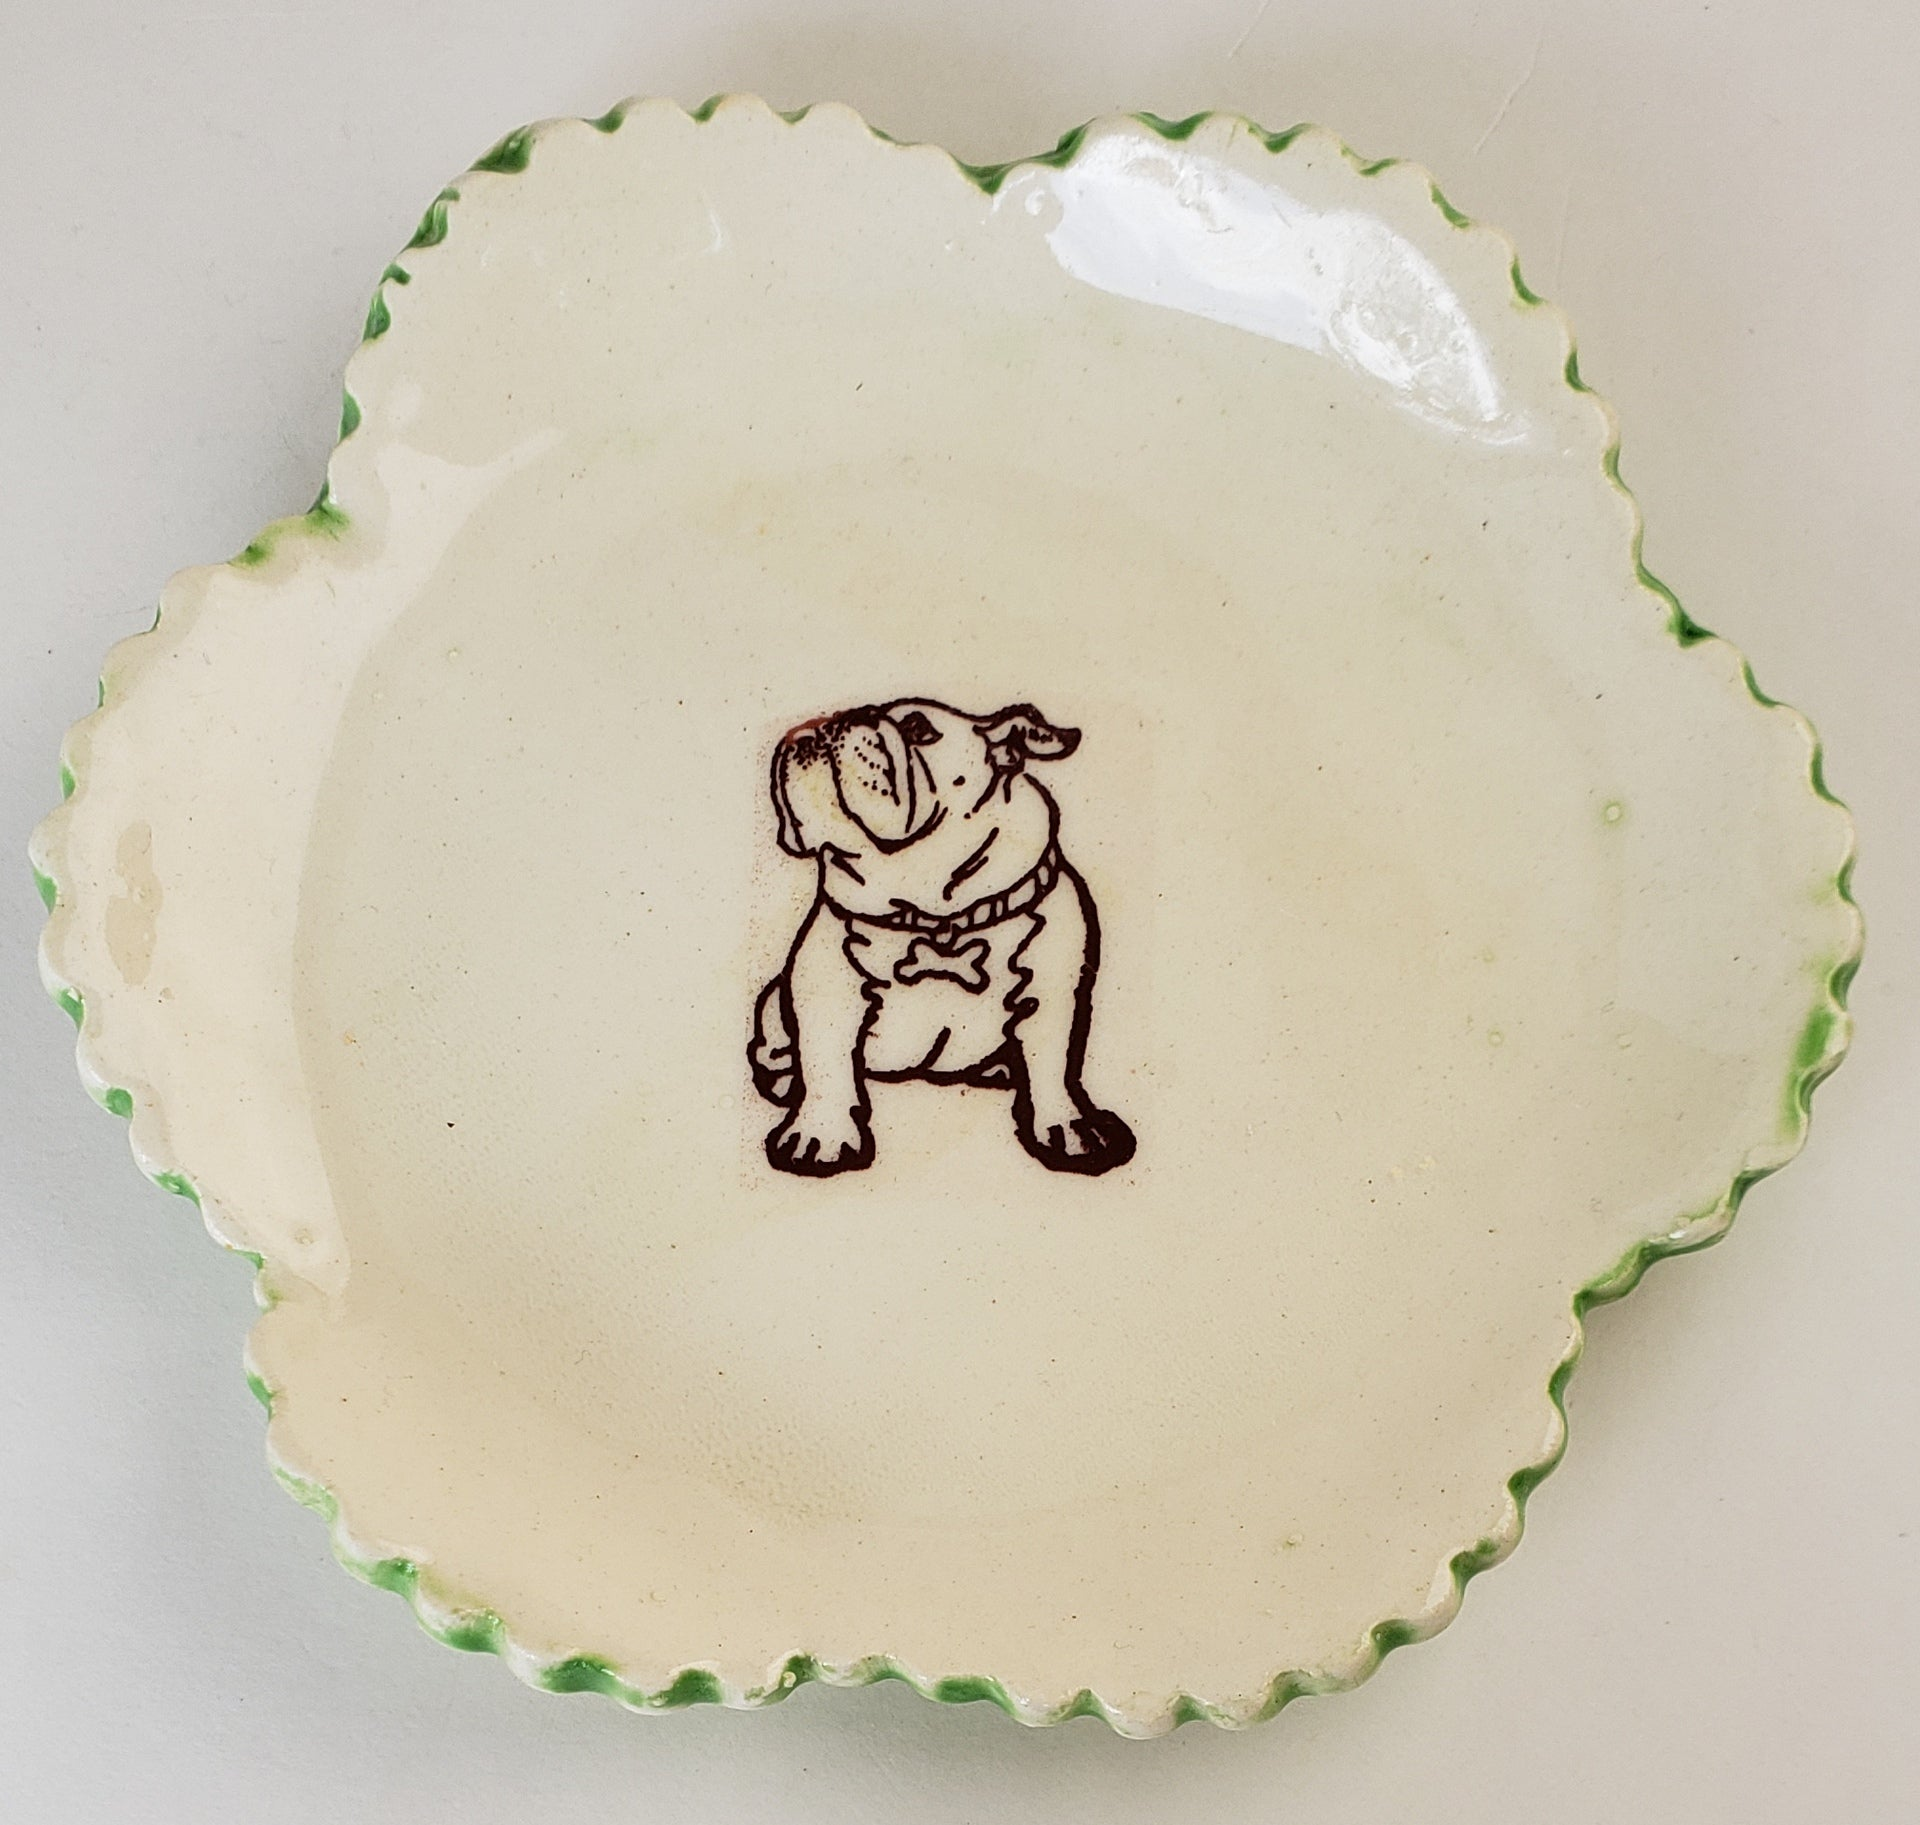 Tiny Plate with a Bulldog - Artworks by Karen Fincannon